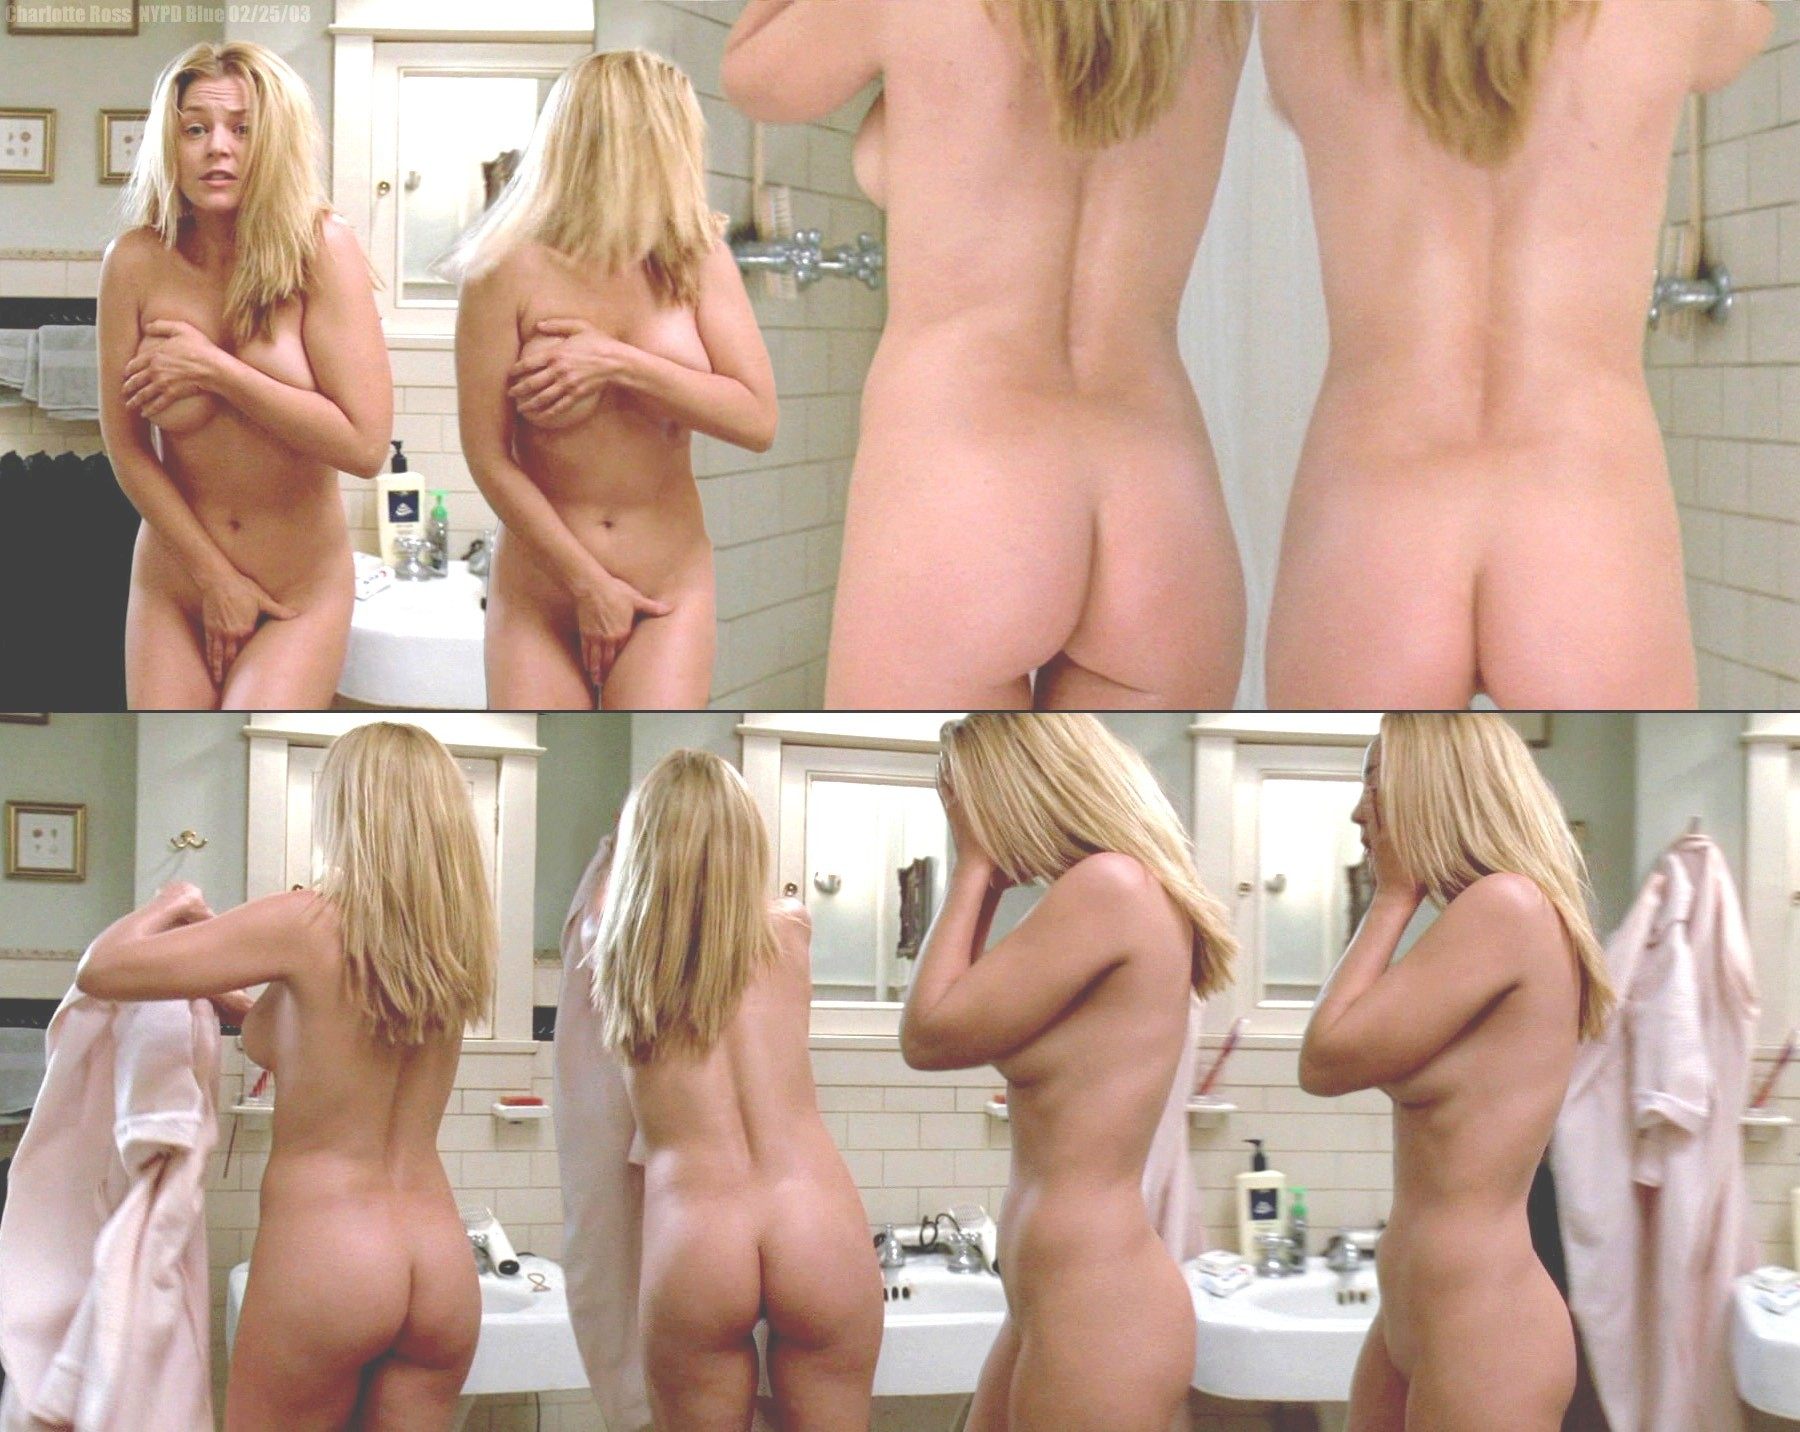 nude topless Charlotte ross